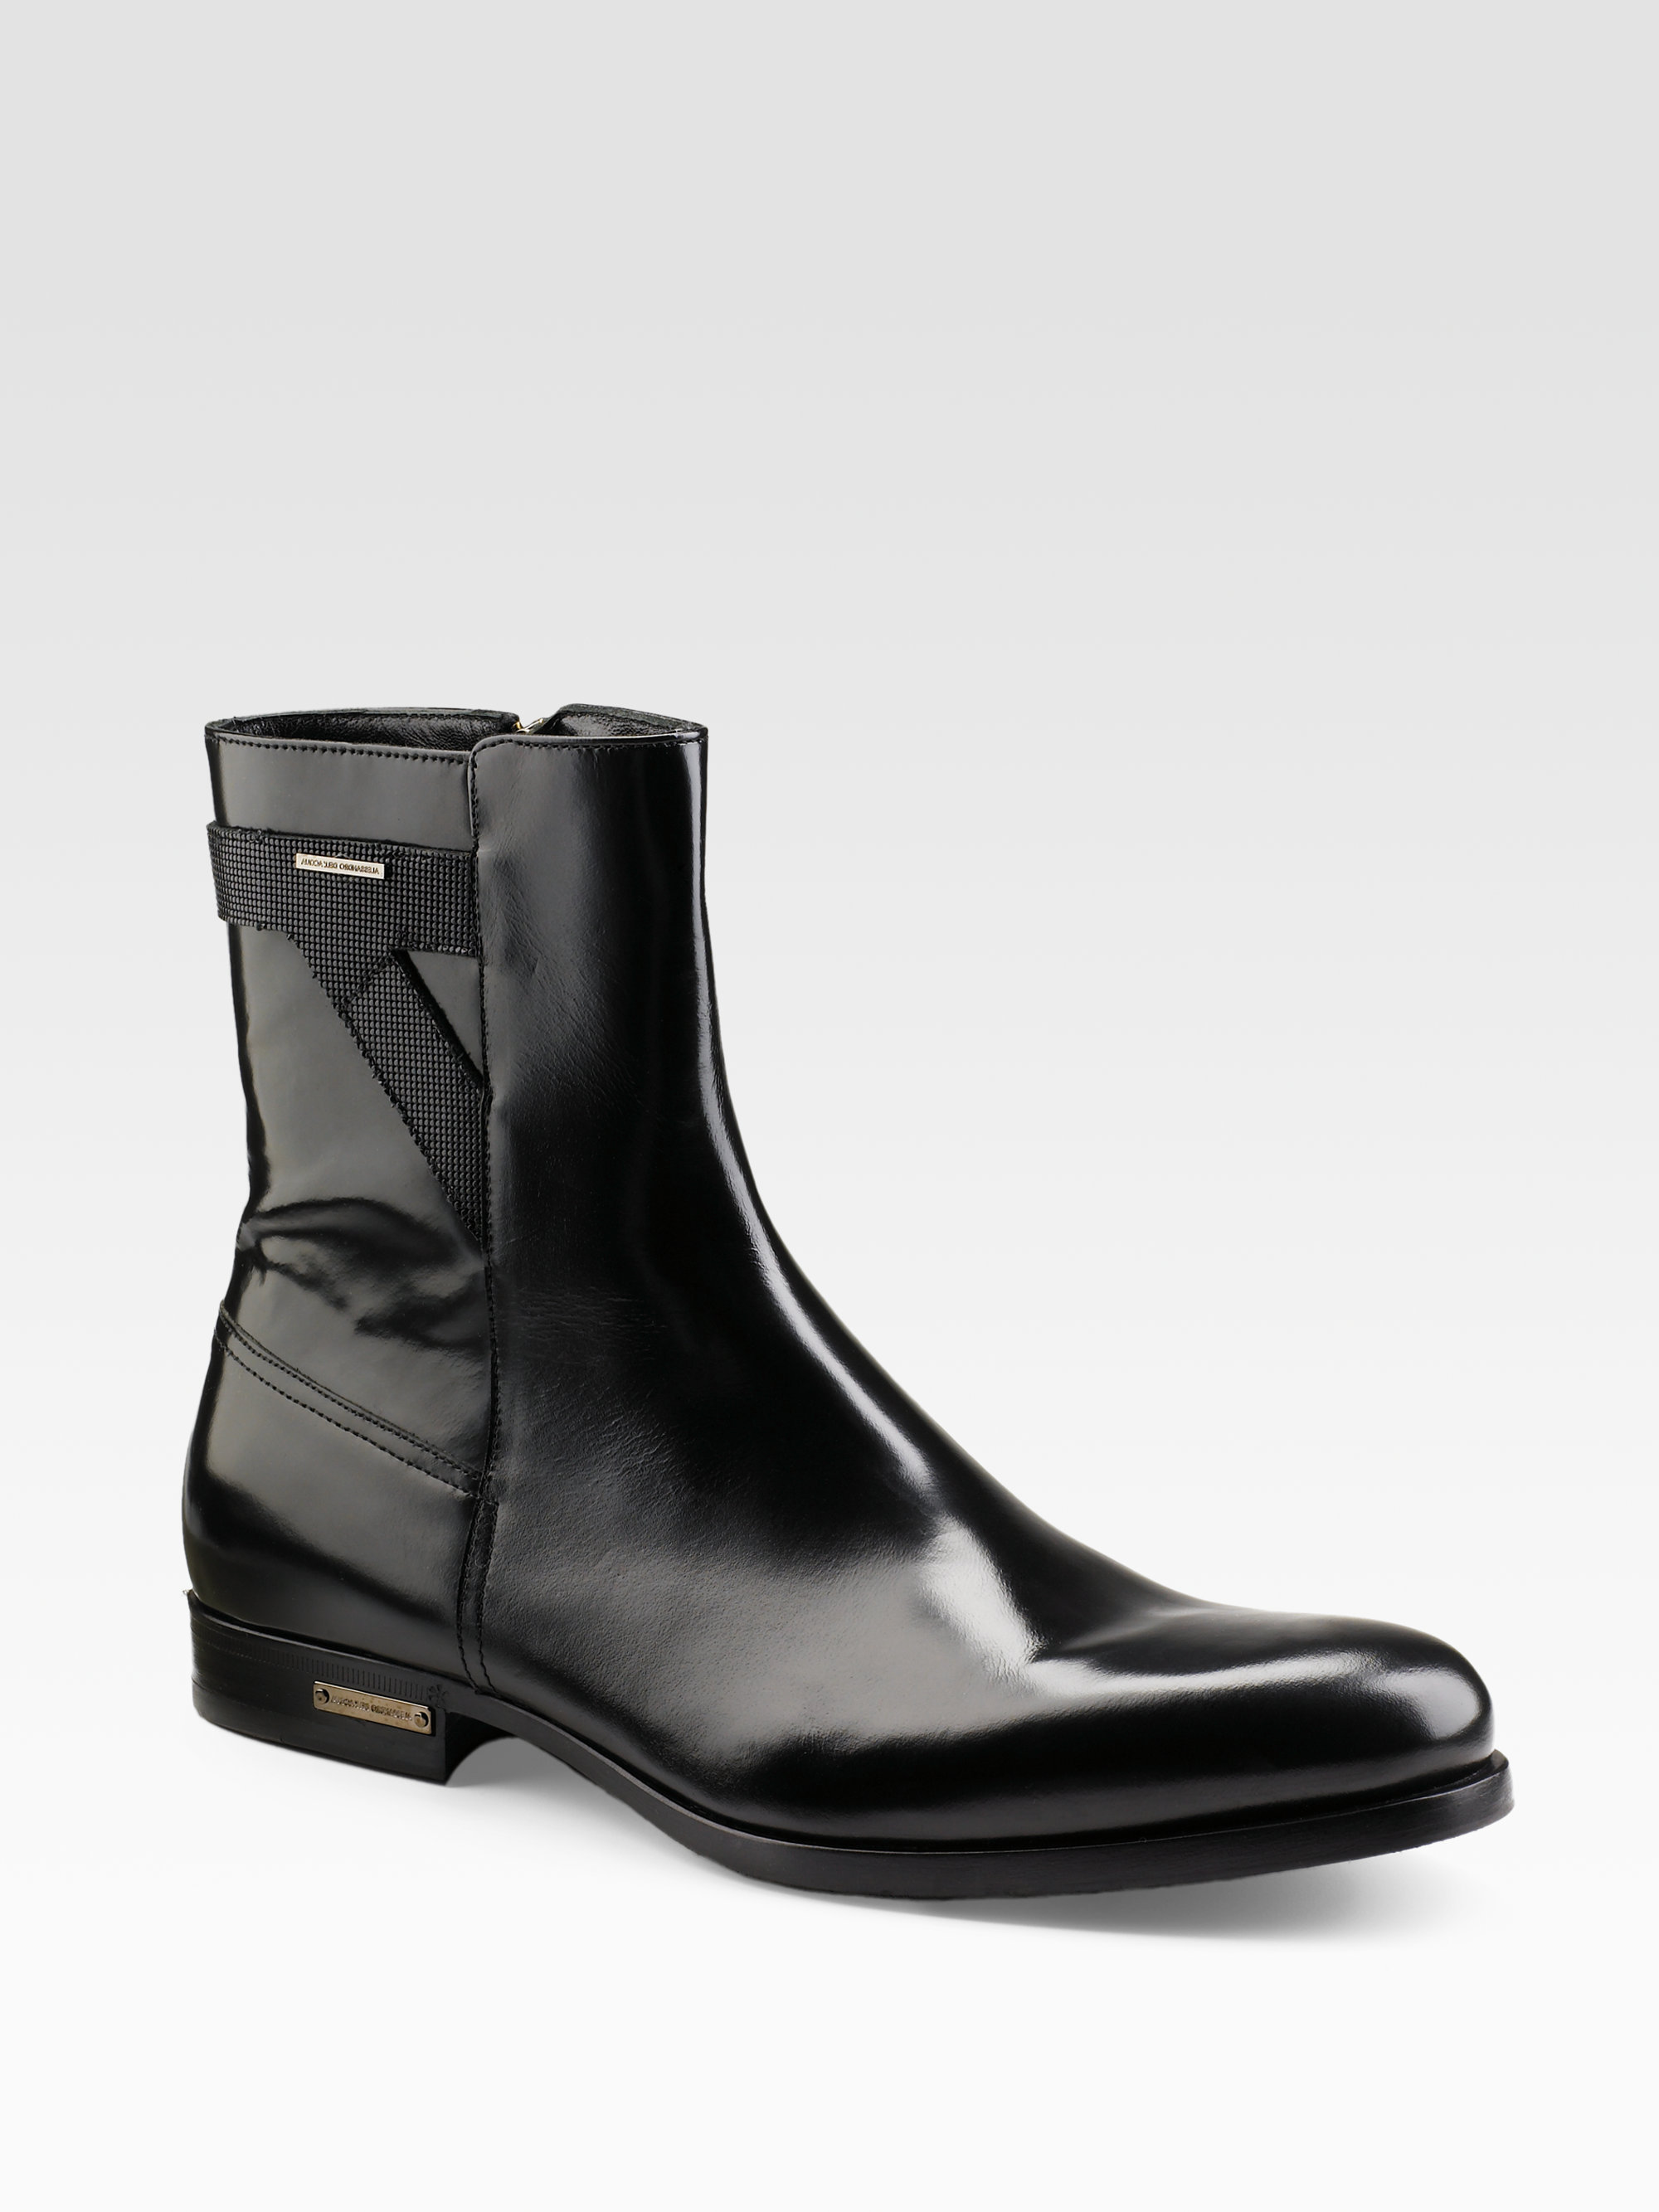 FOOTWEAR - Ankle boots Alessandro Dell´Acqua Best Place Many Styles For Sale Free Shipping Websites For Sale Wide Range Of Sale Online FHUQGOqB